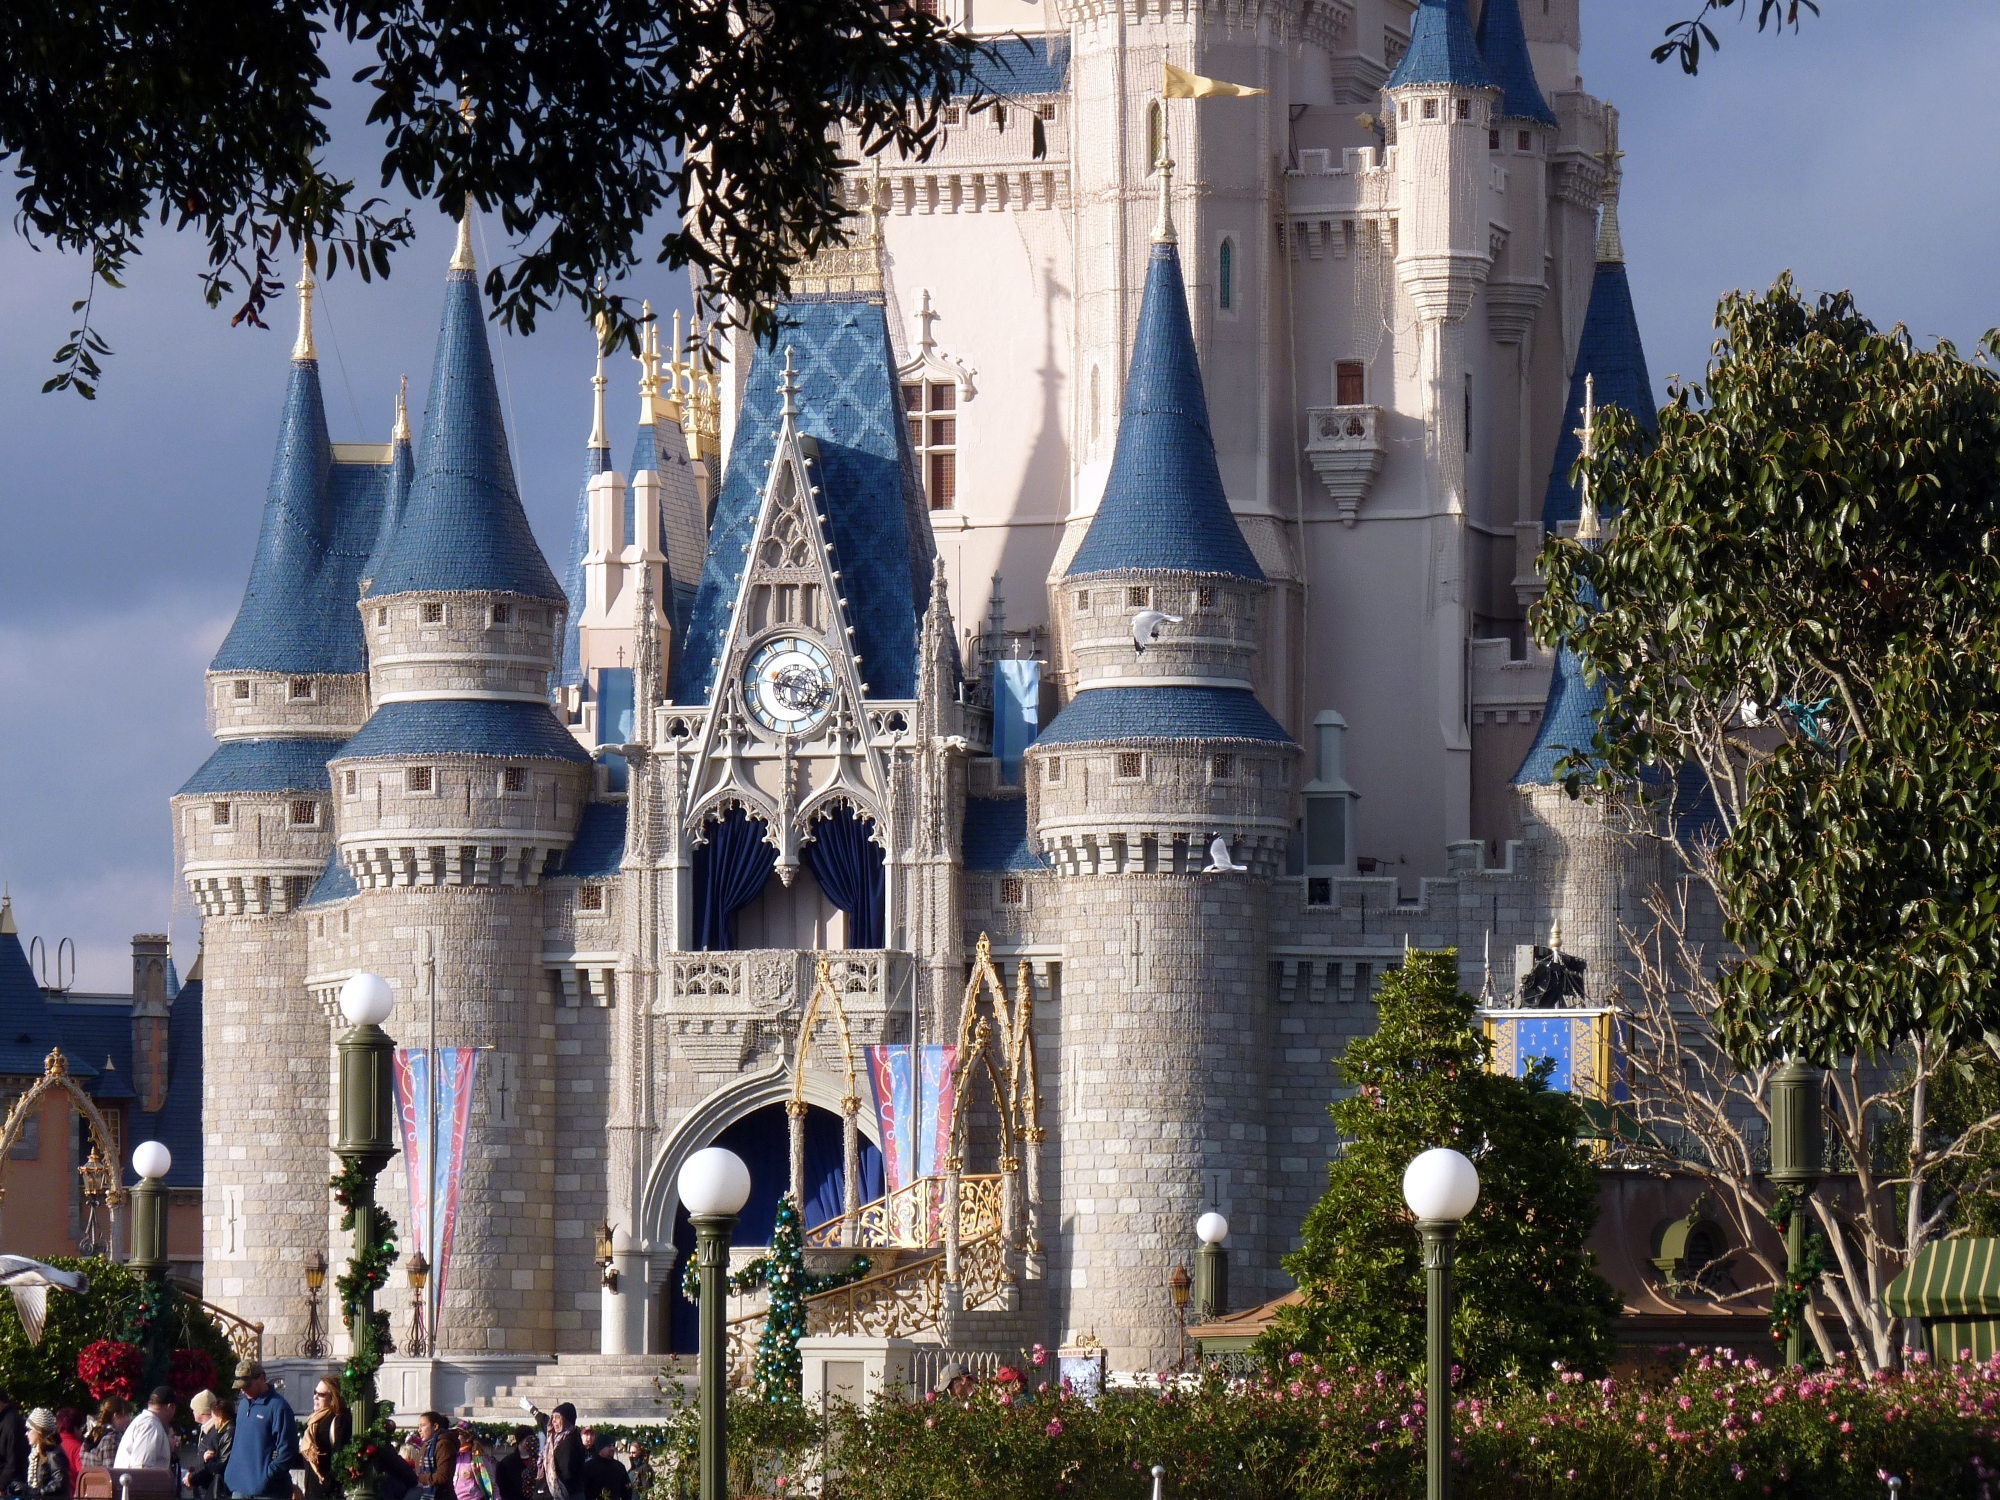 Jud's Disney Picture of the Day: Castle and Trees